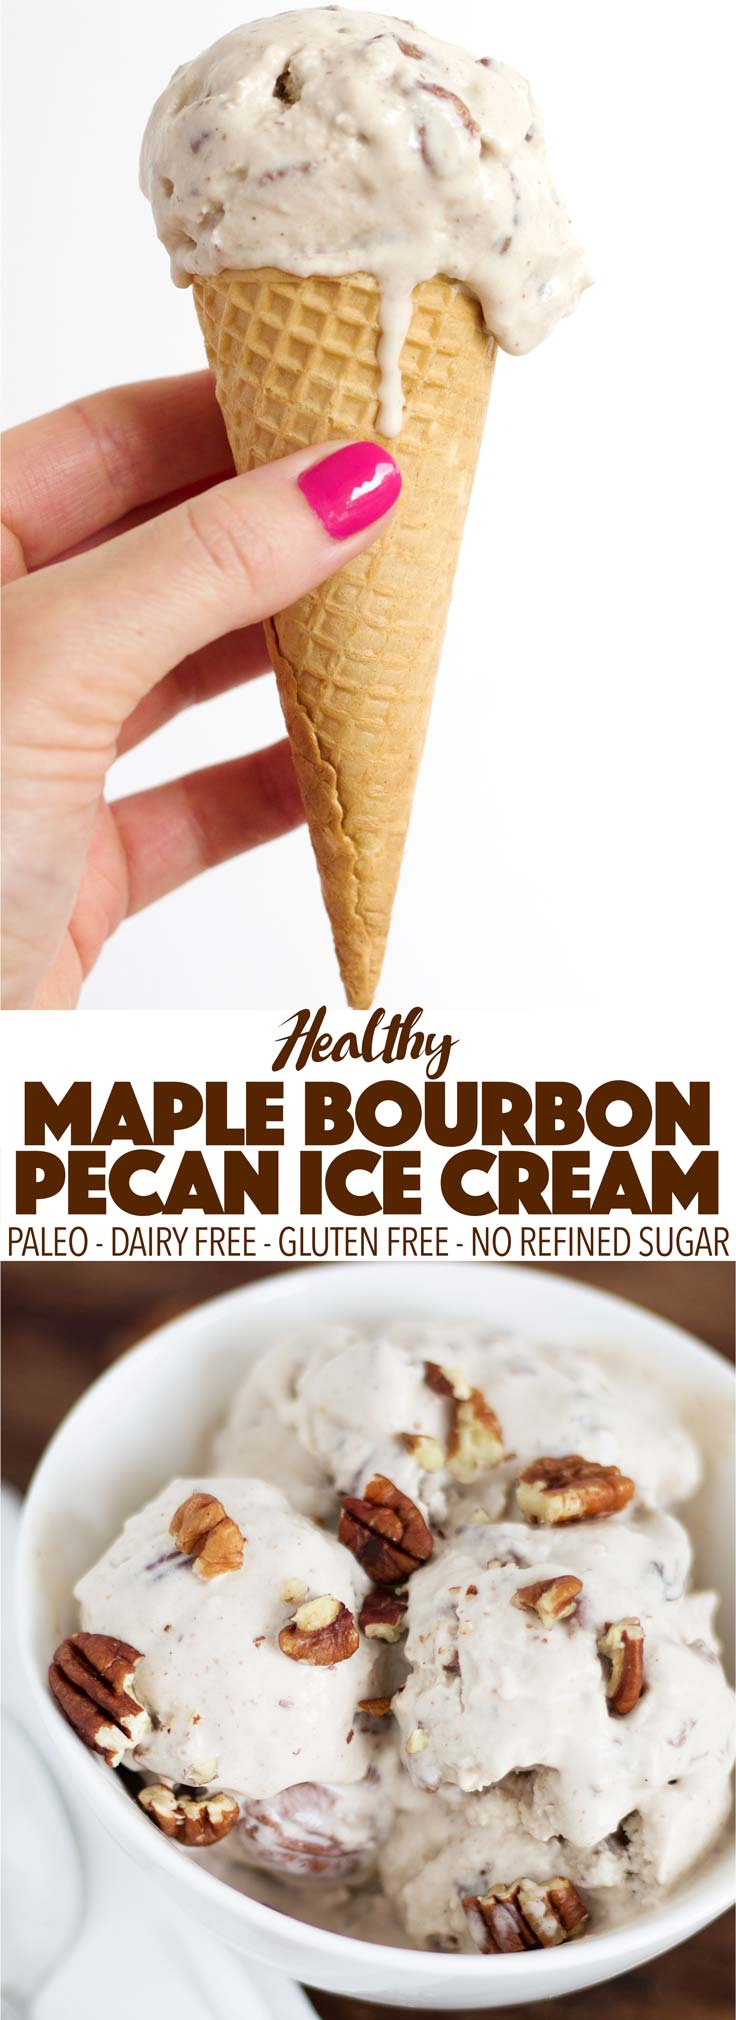 Healthy and simple to make, this maple bourbon pecan ice cream is paleo and dairy free! It's the perfect dessert for a hot summer night. Or really any time!